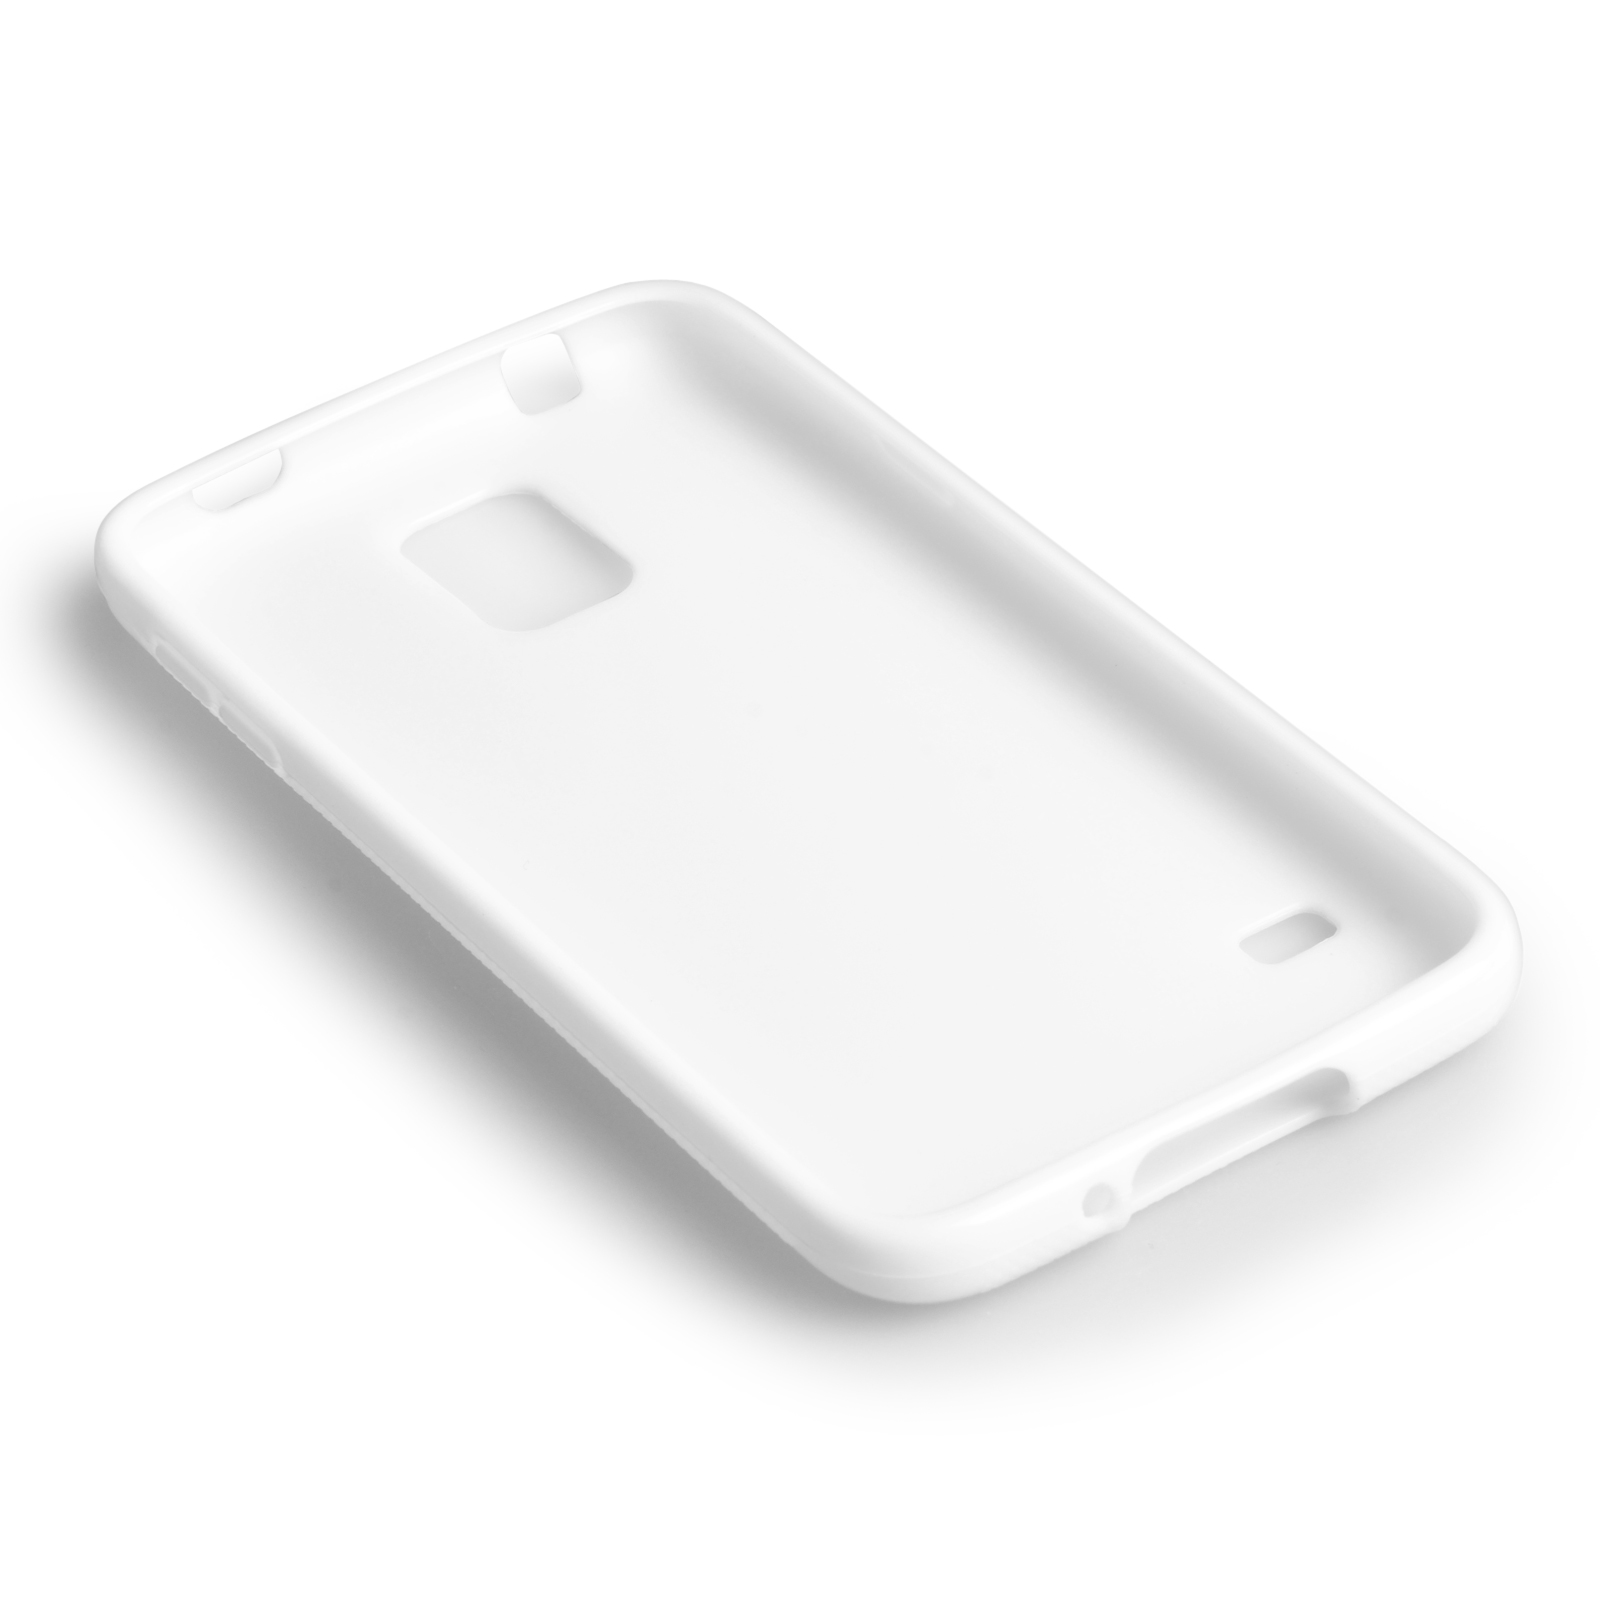 YouSave Accessories Samsung Galaxy S5 Silicone Gel X-Line Case - White